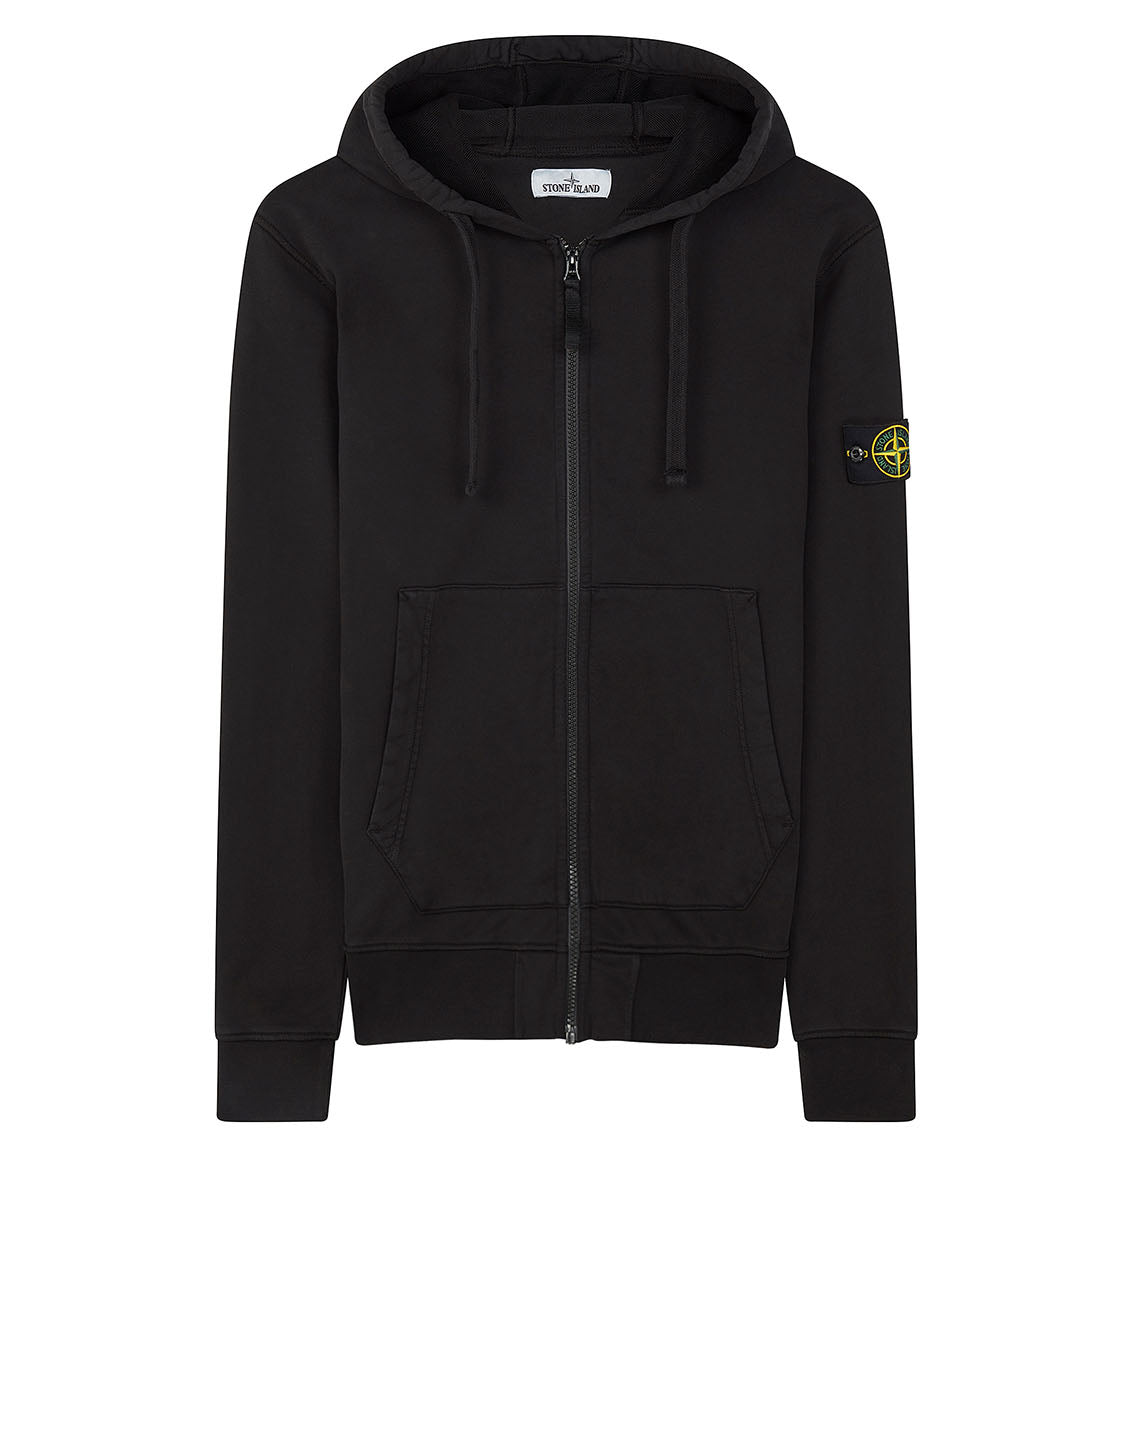 64251 Zip Sweatshirt in Black